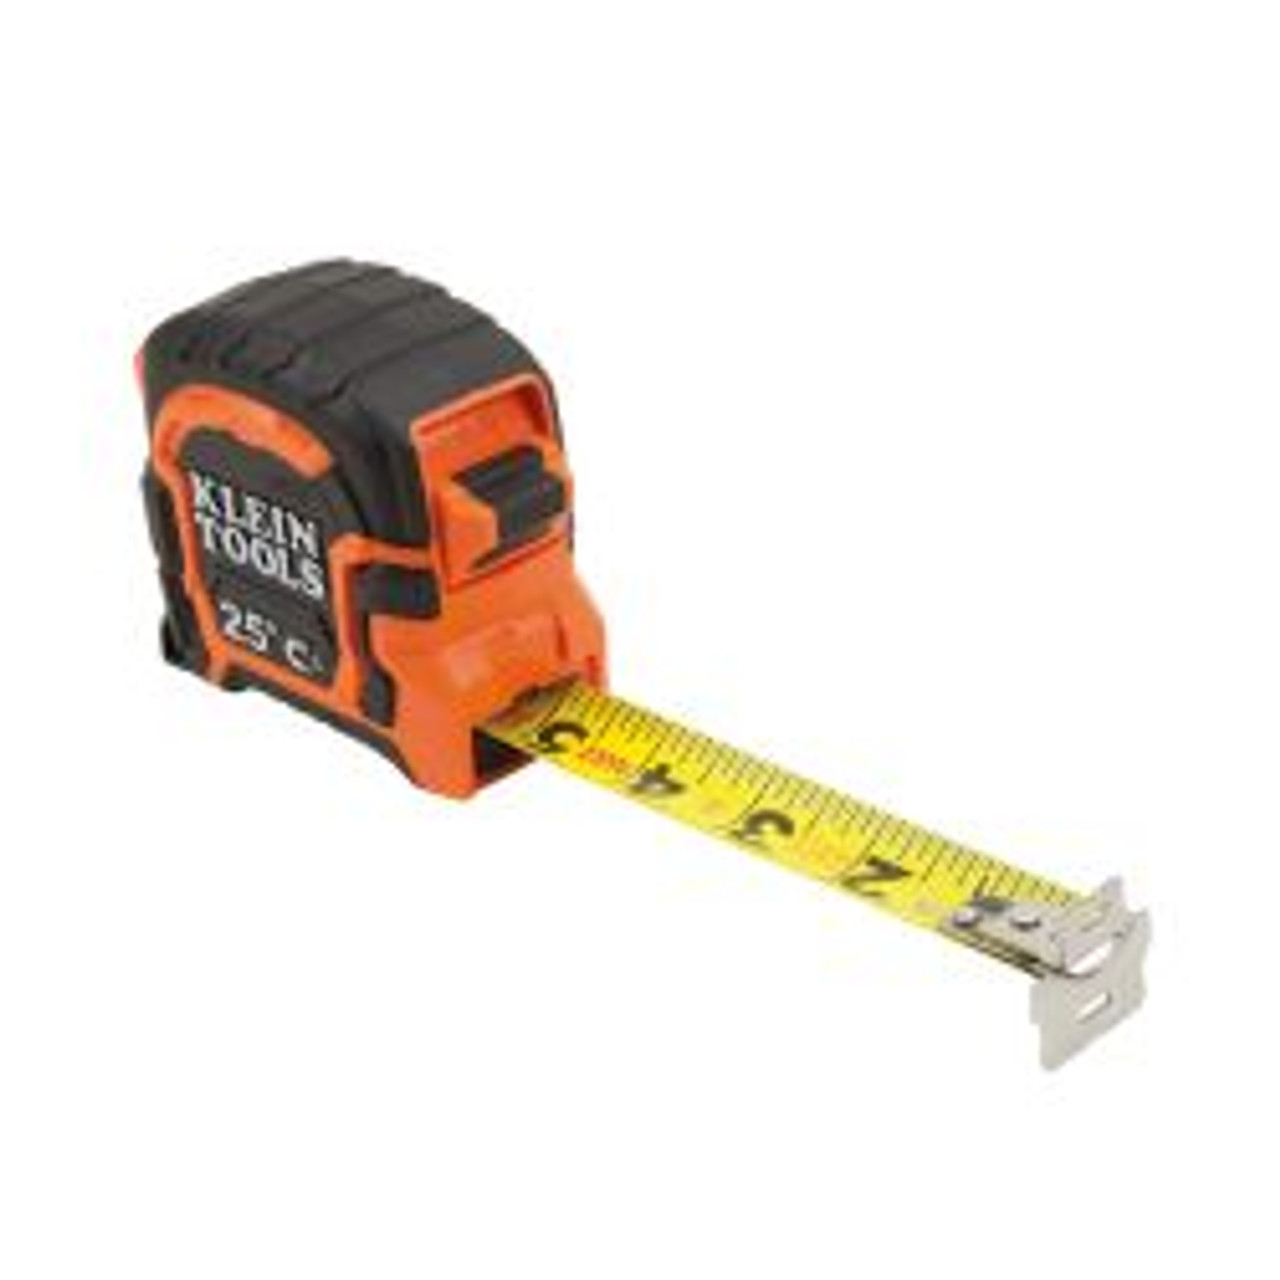 Klein 86225 25ft Double Hook Magnetic Tape Measure